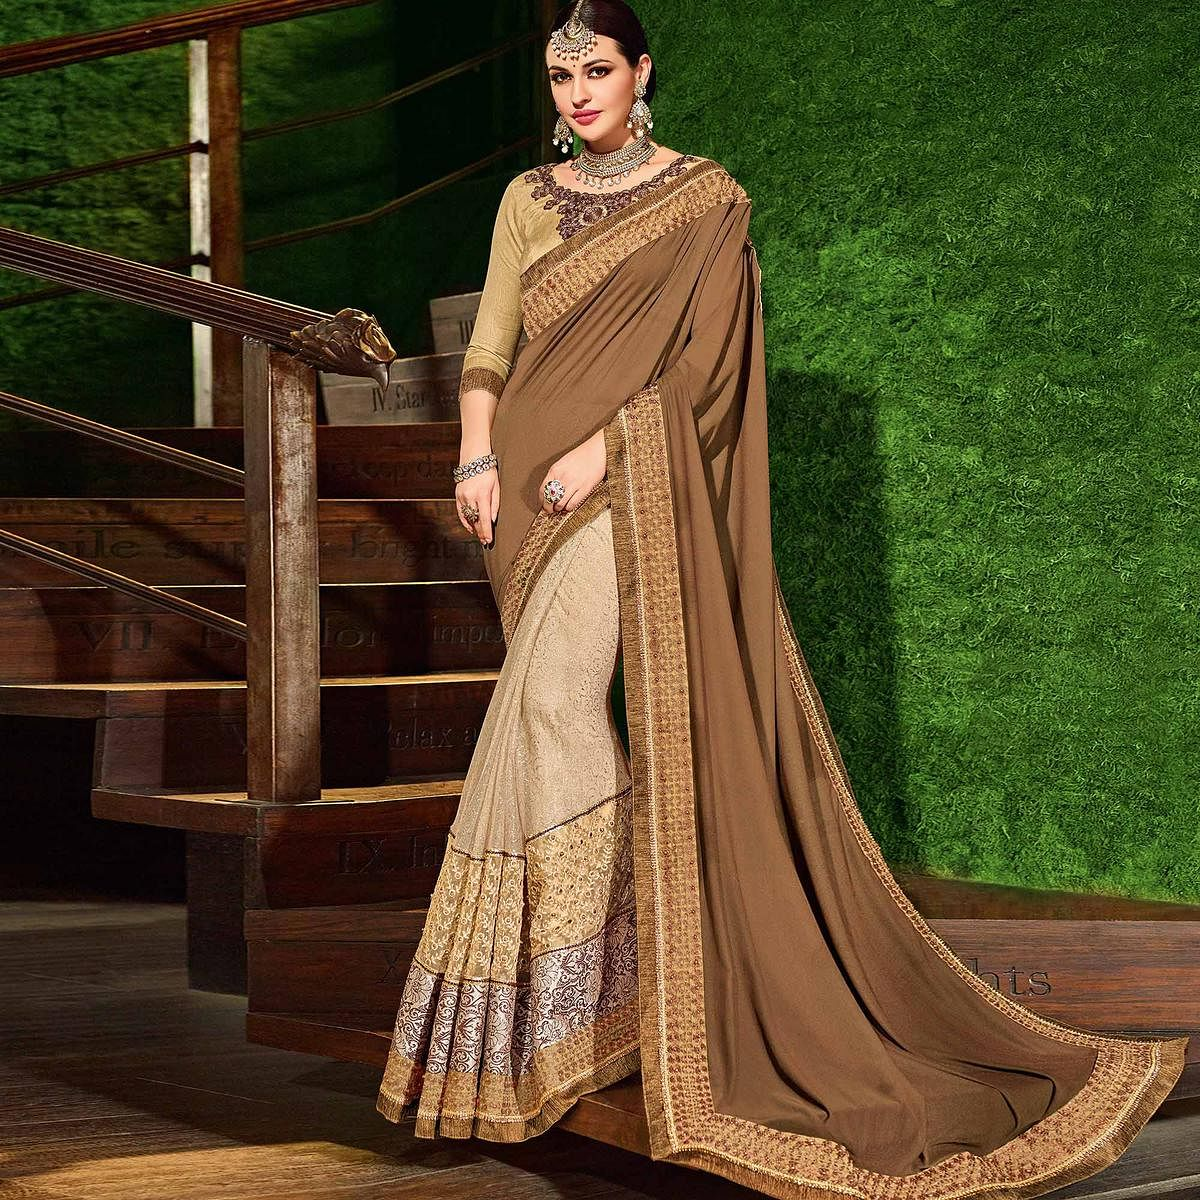 Brown-Beige Colored Designer Partywear Embroidered Georgette And Jacquard Saree